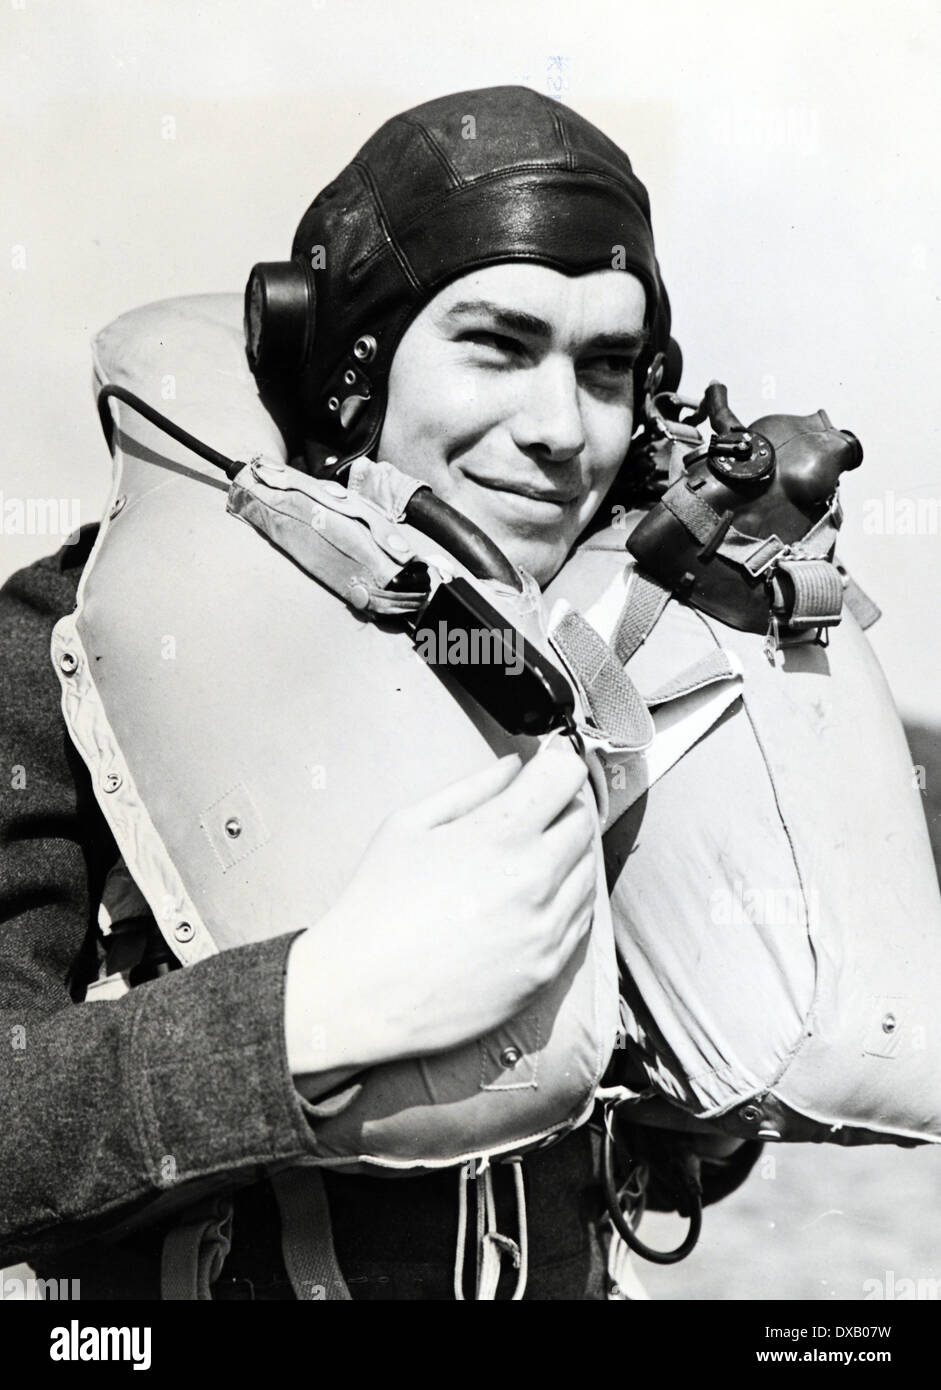 WW11 RAF Pilot in full flying clothing with Mae West lifejacket - Stock Image